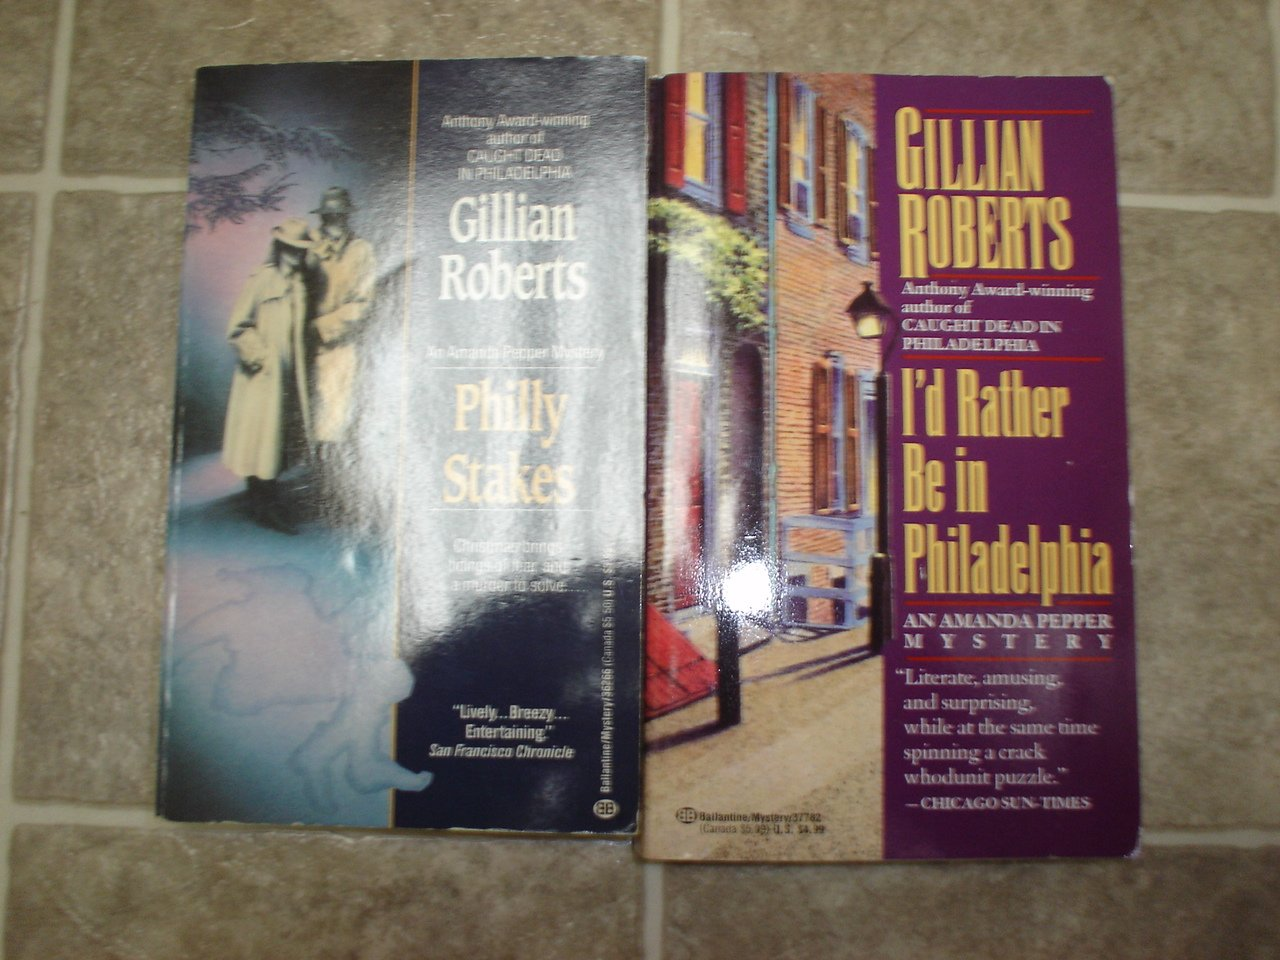 Gillian Roberts Lot of 2 pb mystery books cozy Amanda Pepper Philadelphia